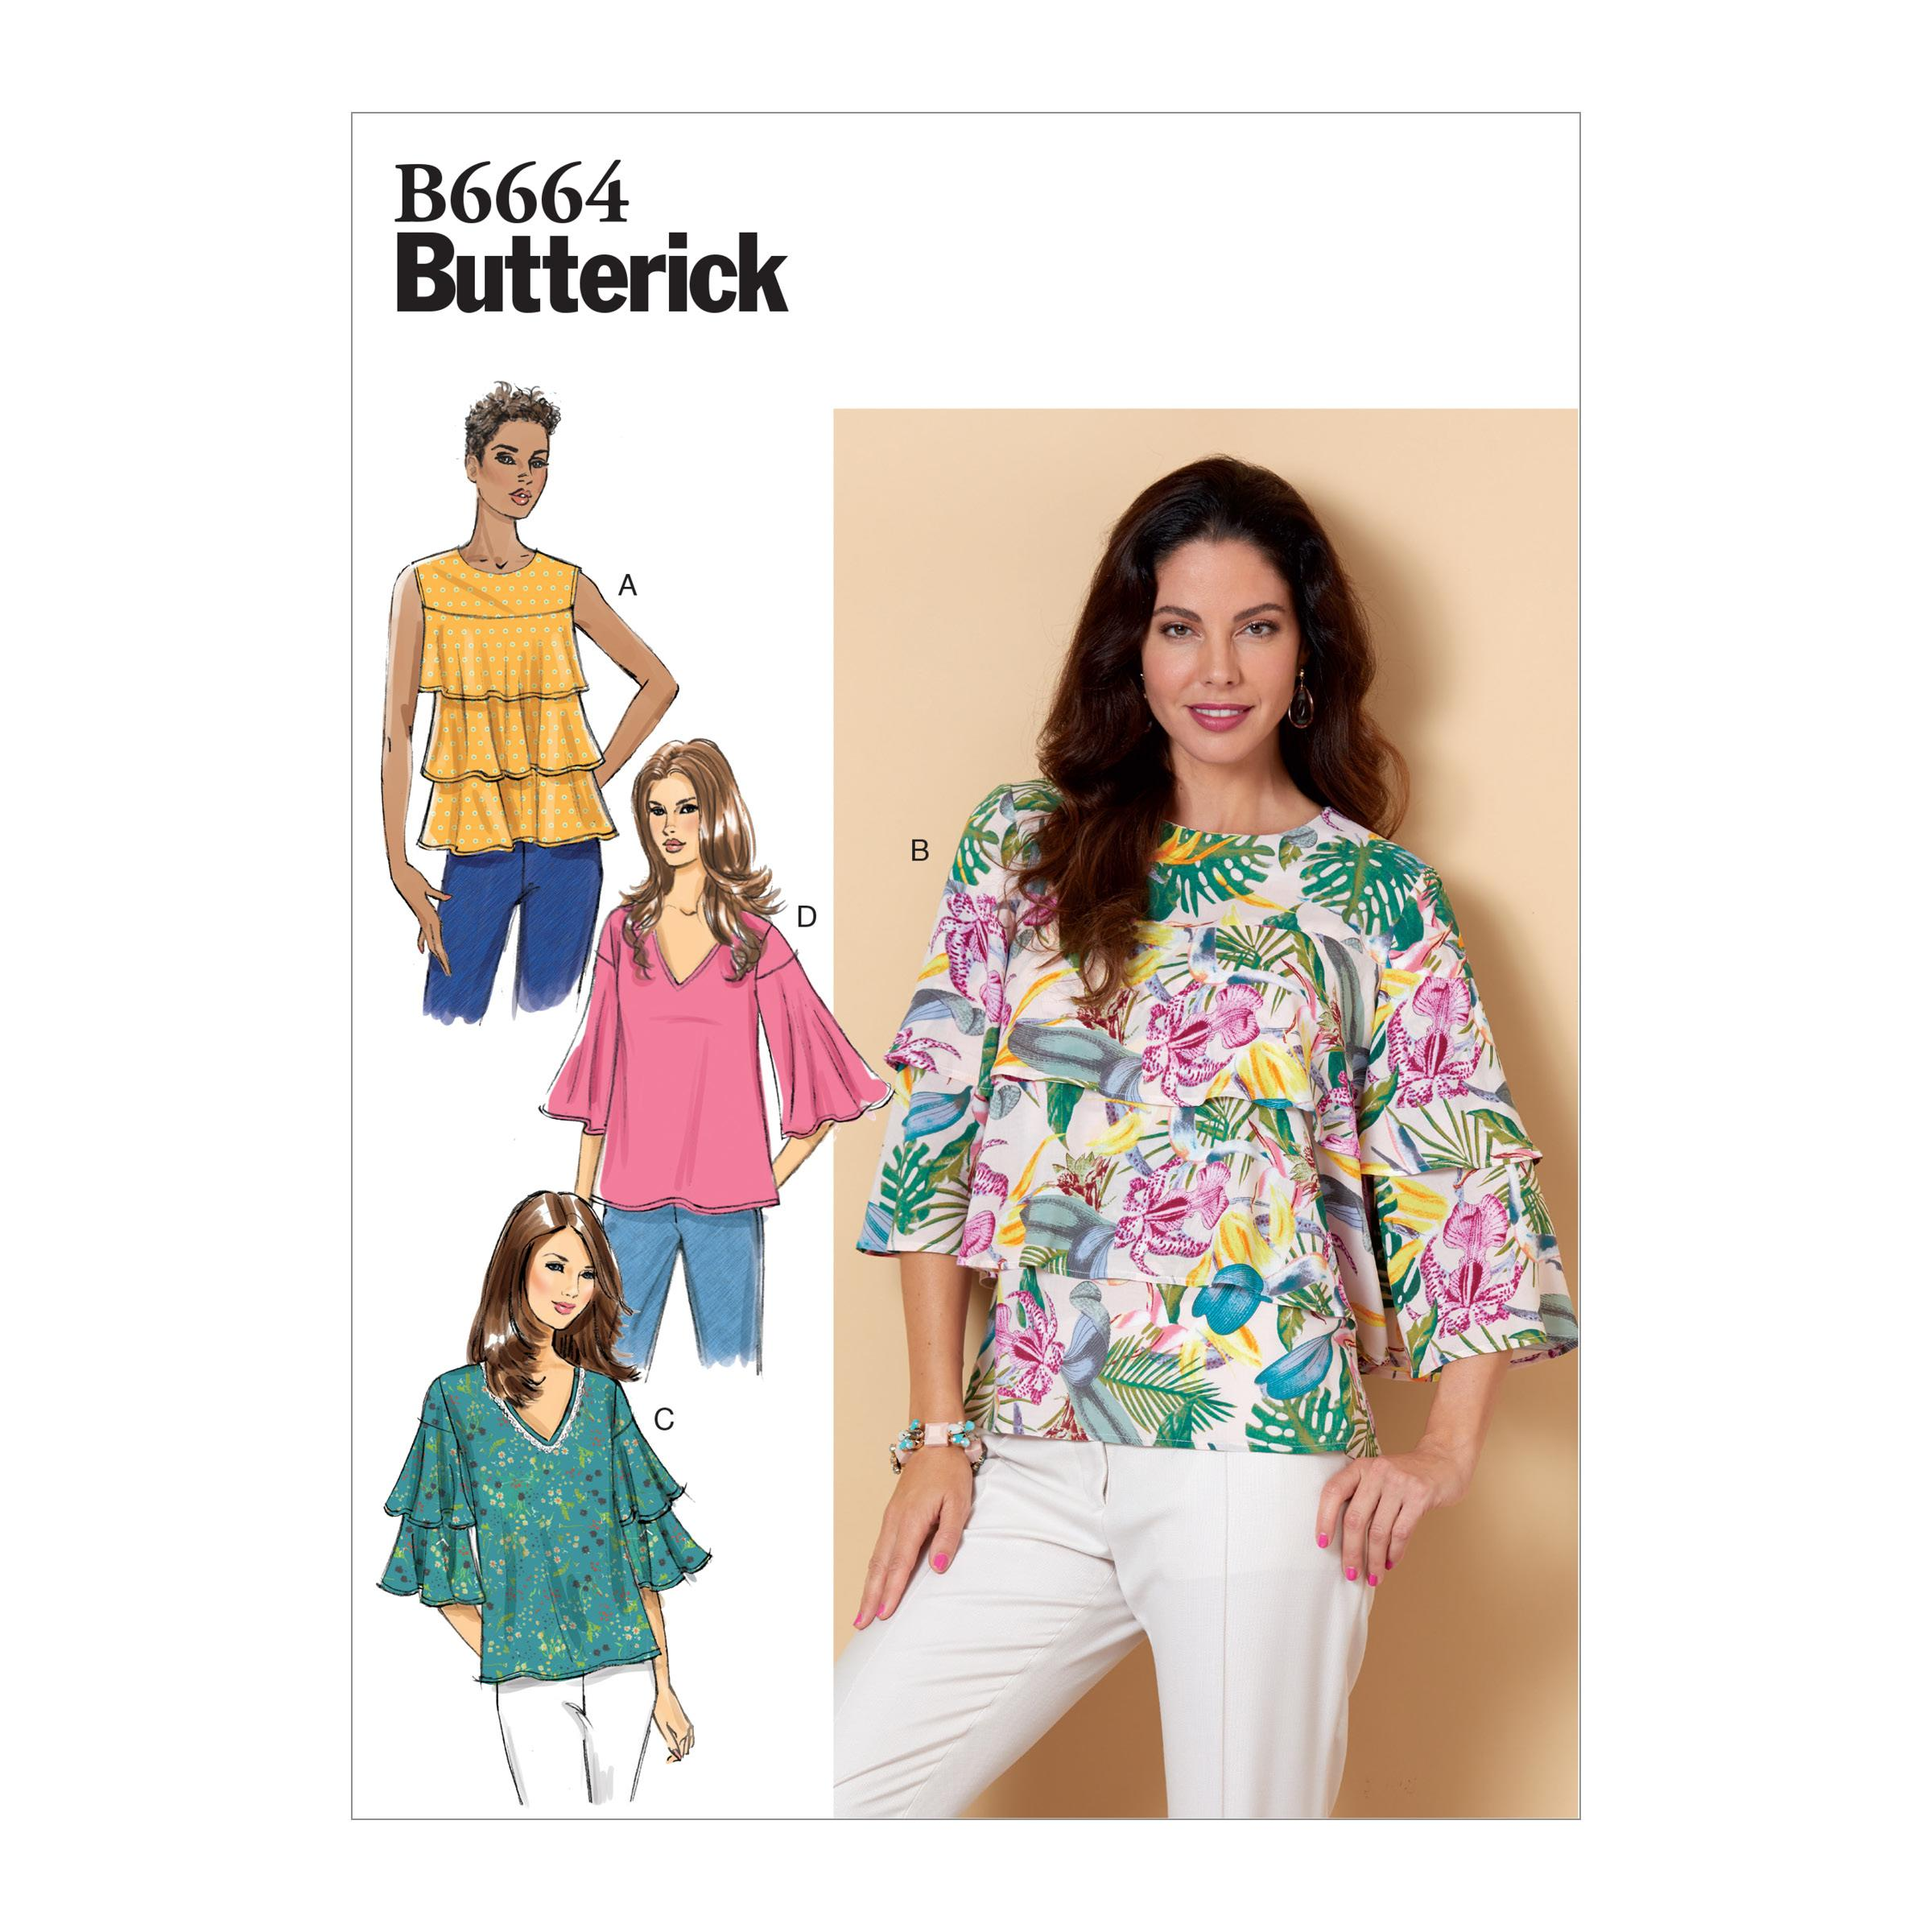 Butterick B6664 Misses' Top